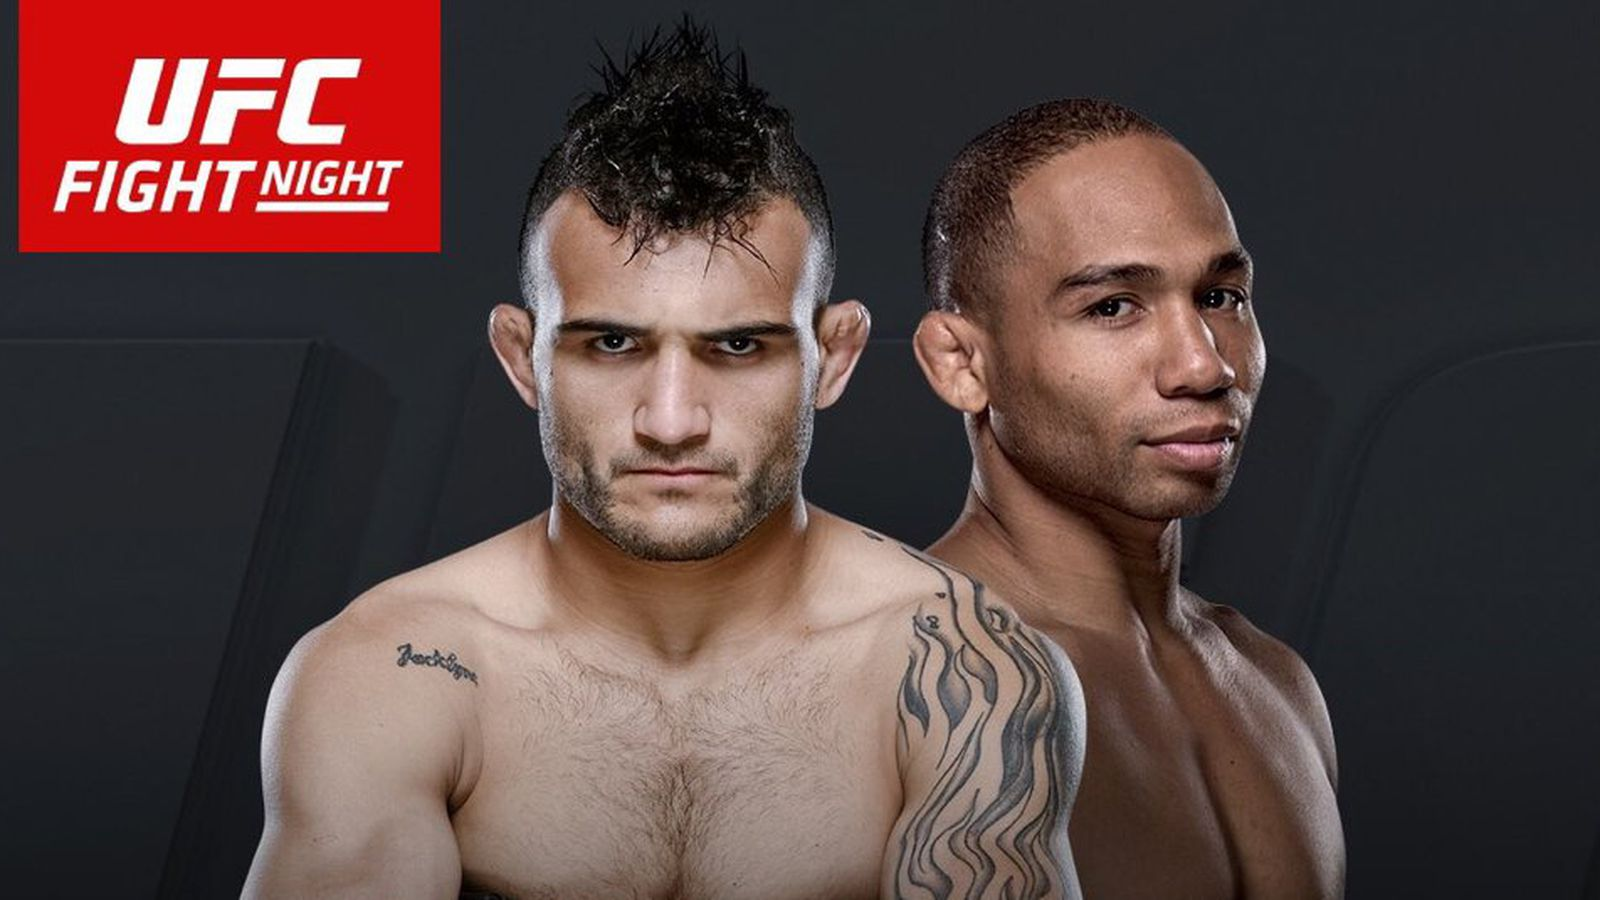 Latest ufc fight night 96 fight card rumors and updates for lineker